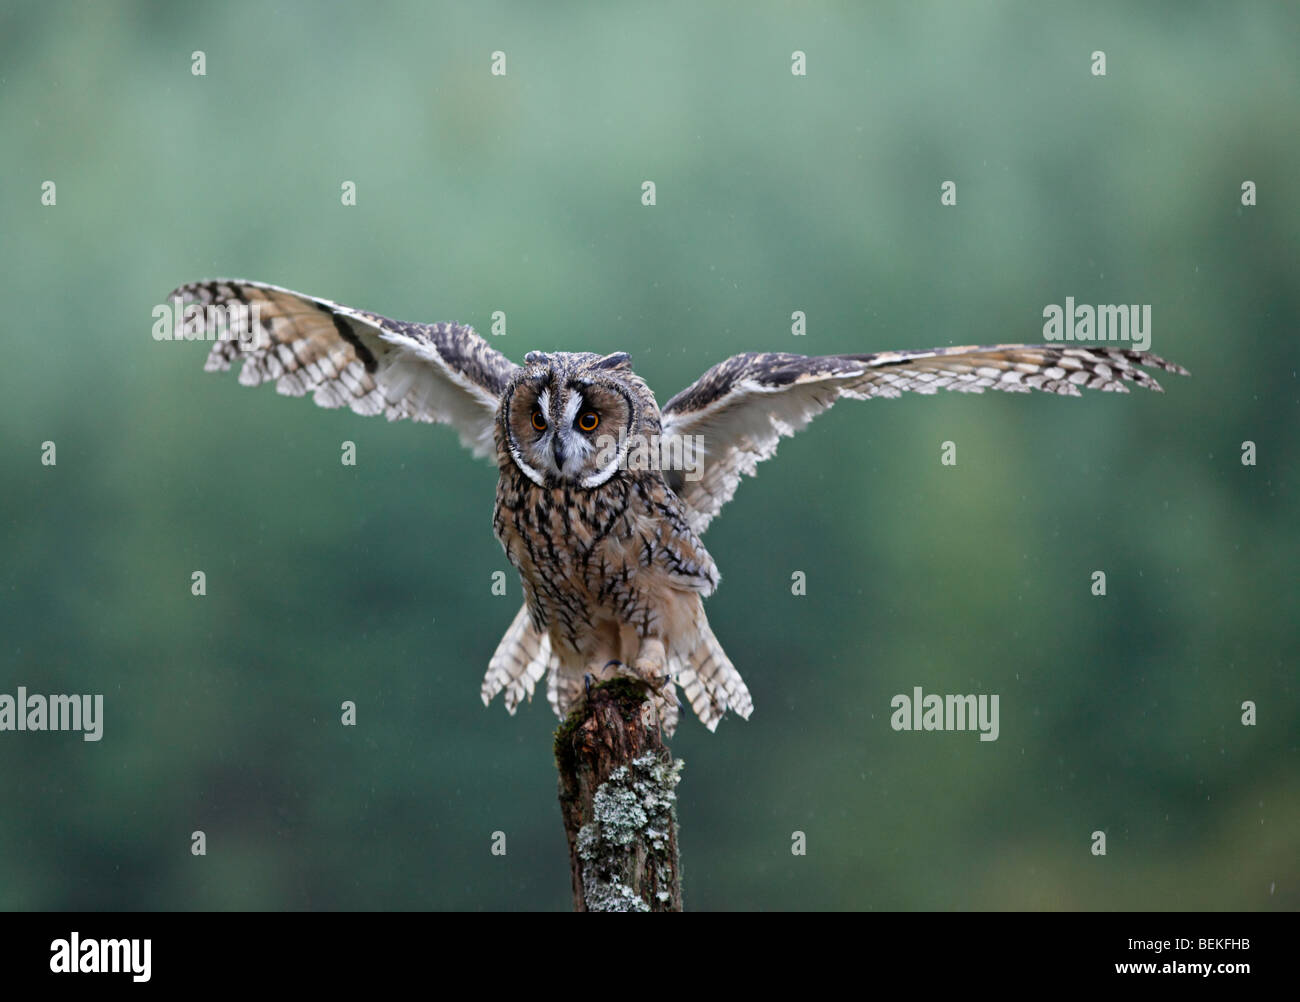 Long eared owl (Asio otus) shaking to remove water from feathers - Stock Image